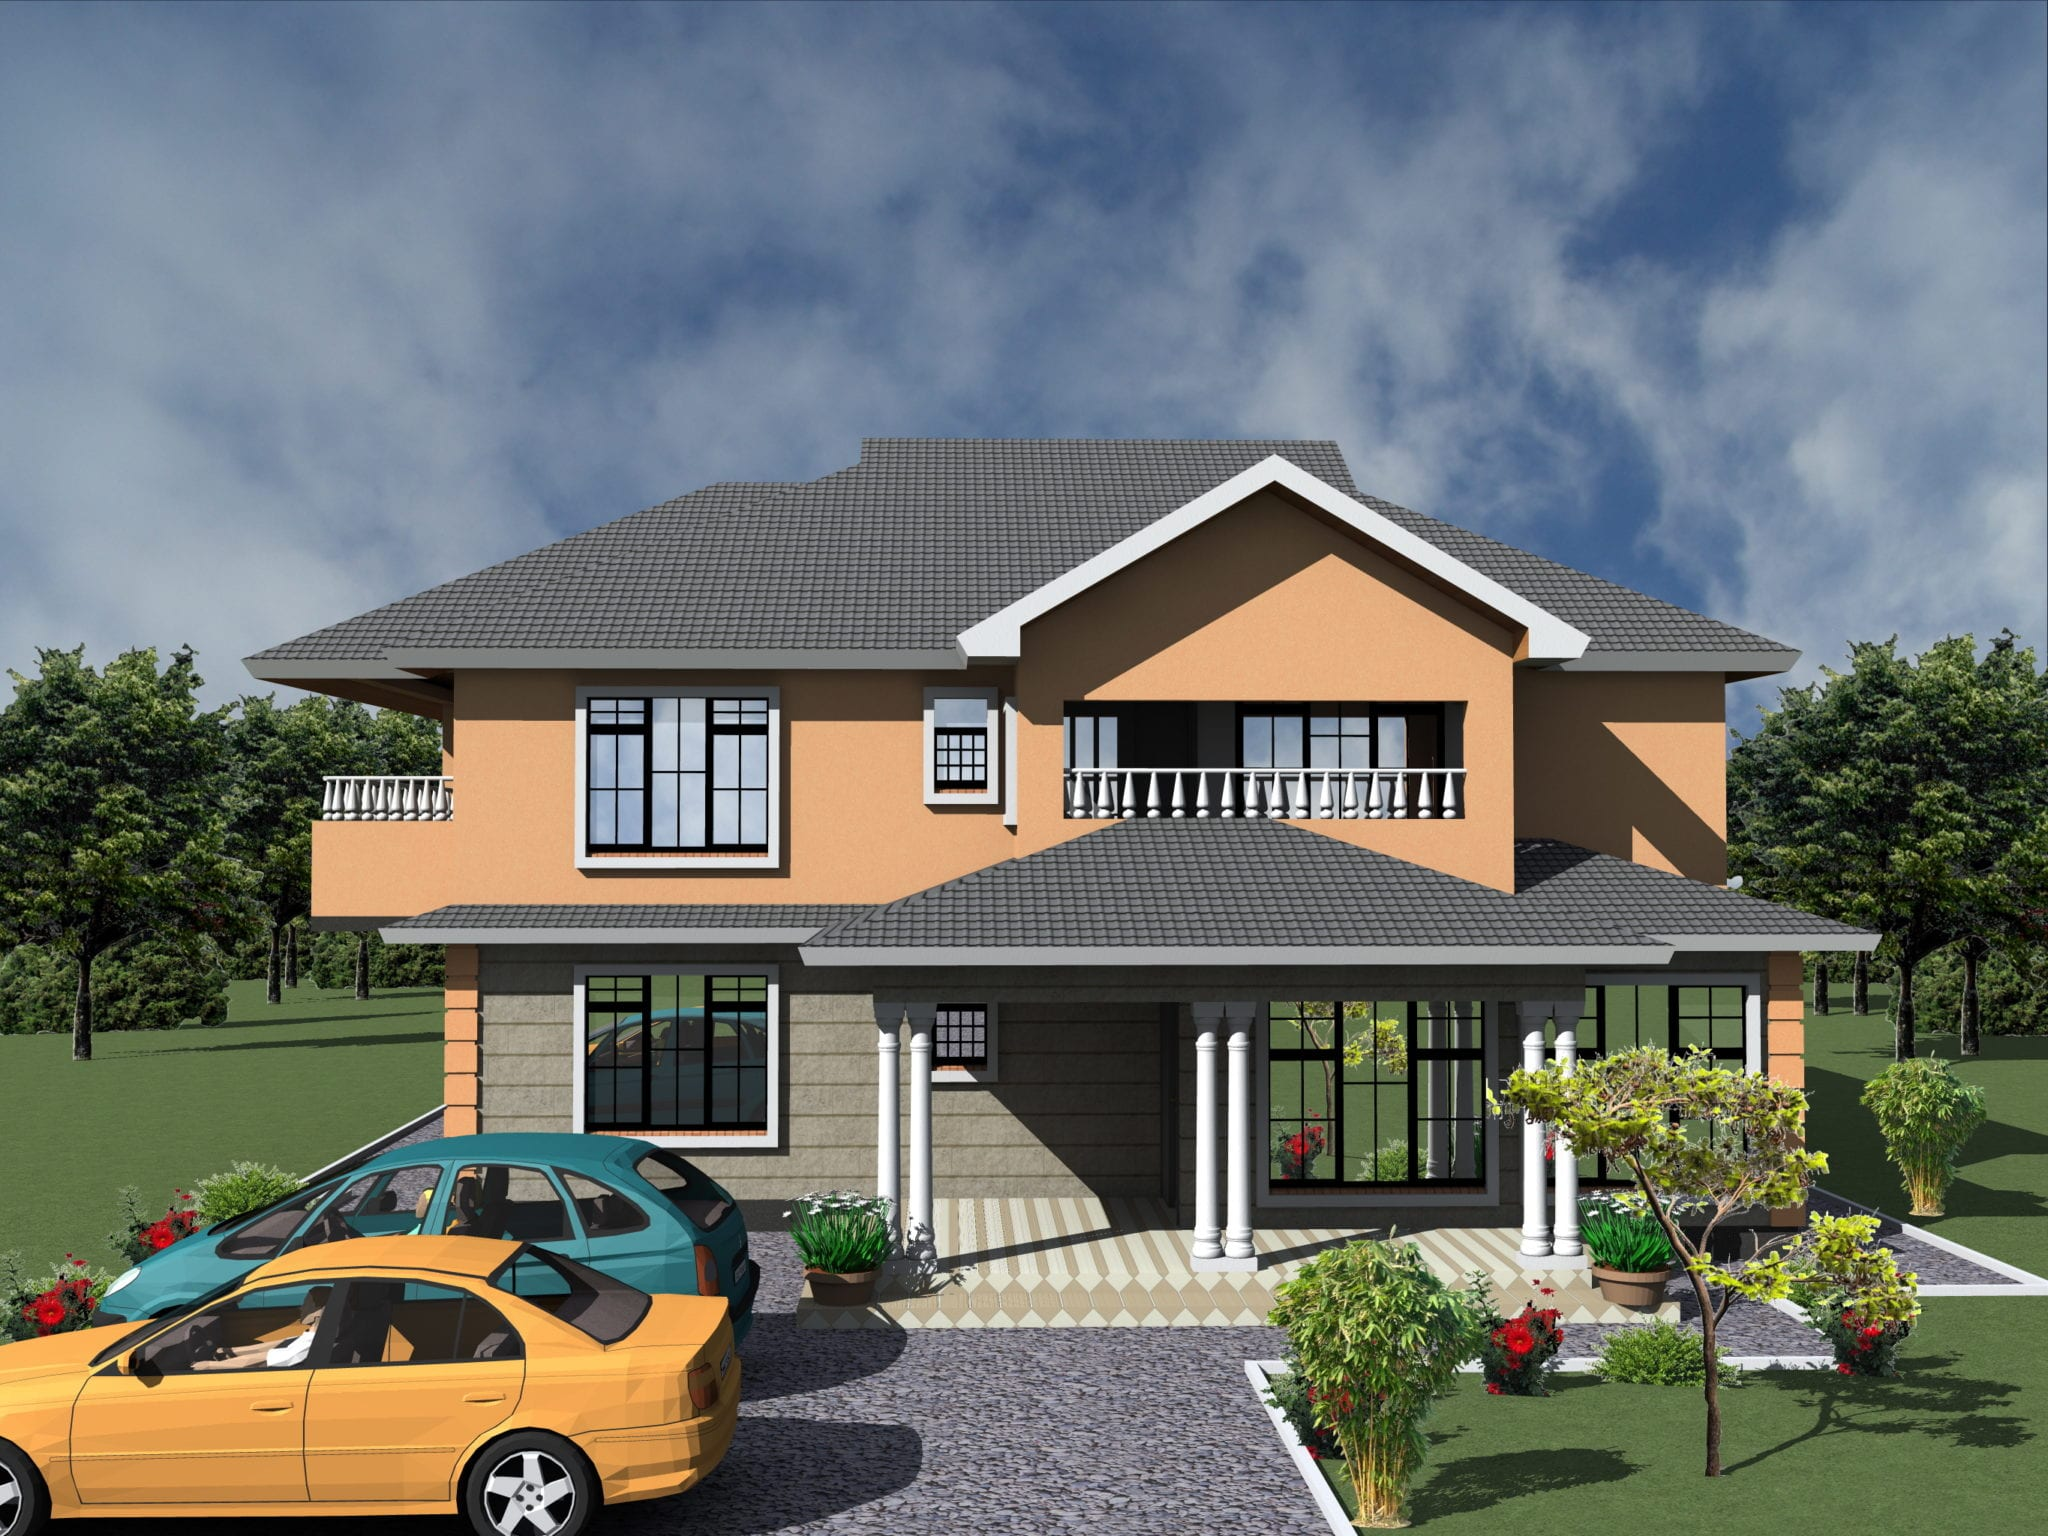 4 bedroom design 1083 a